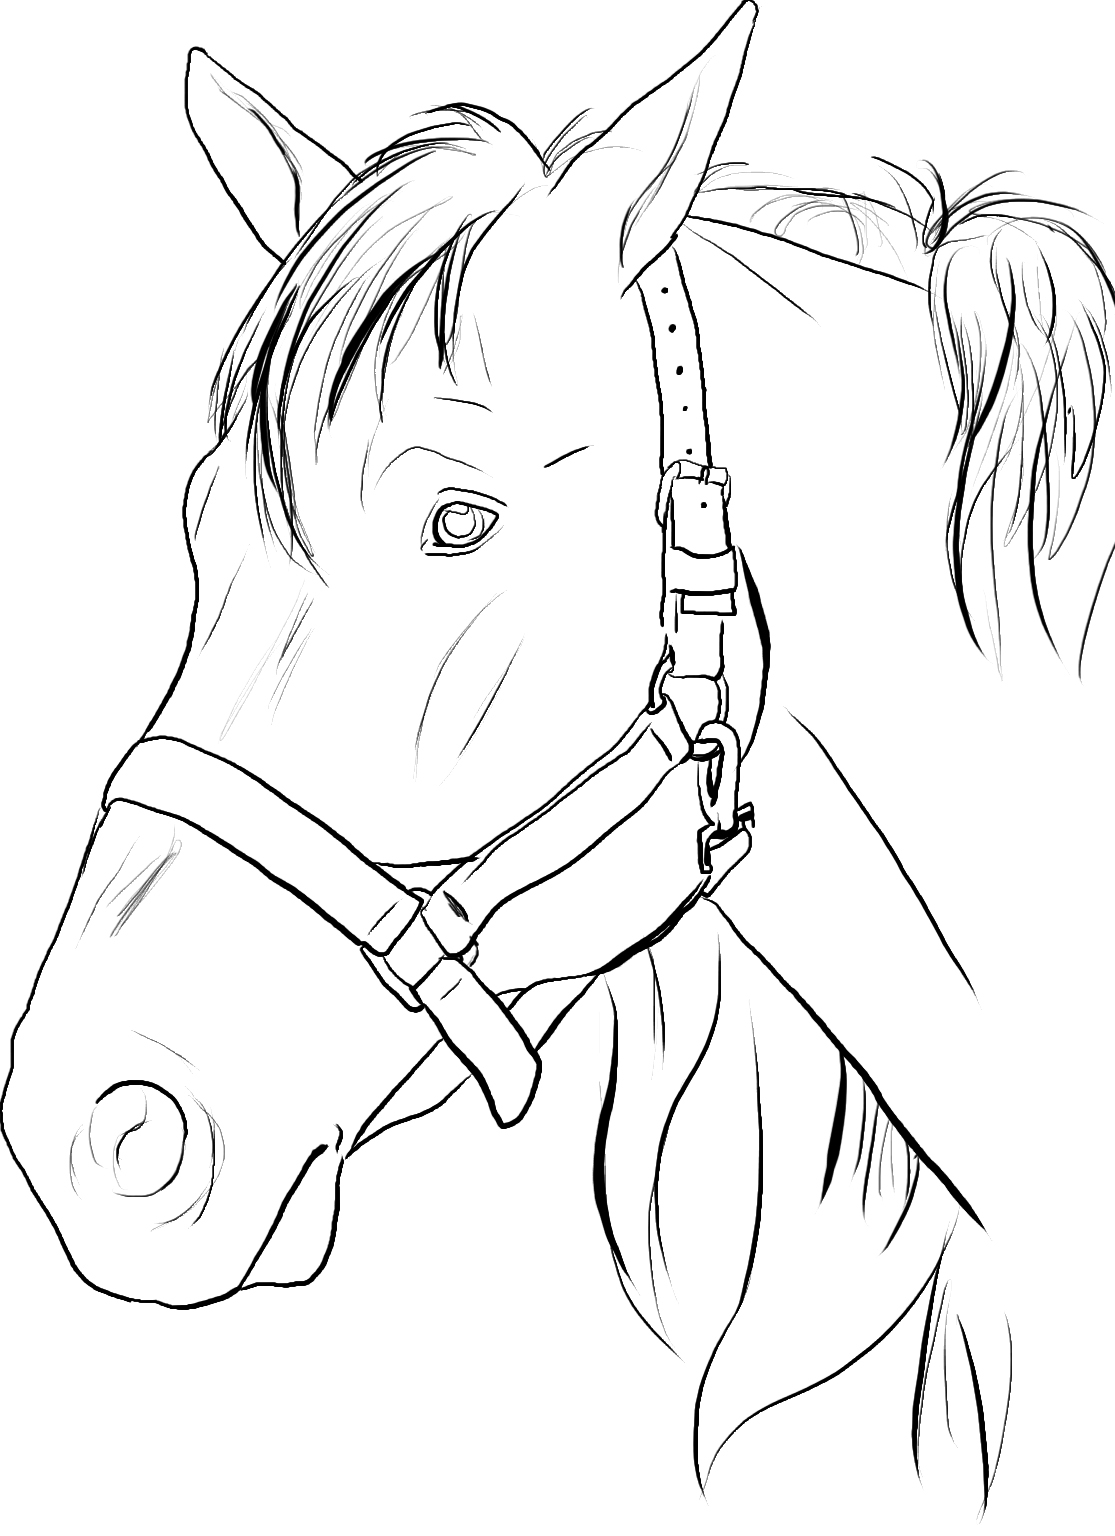 coloring pages horse head - photo#5